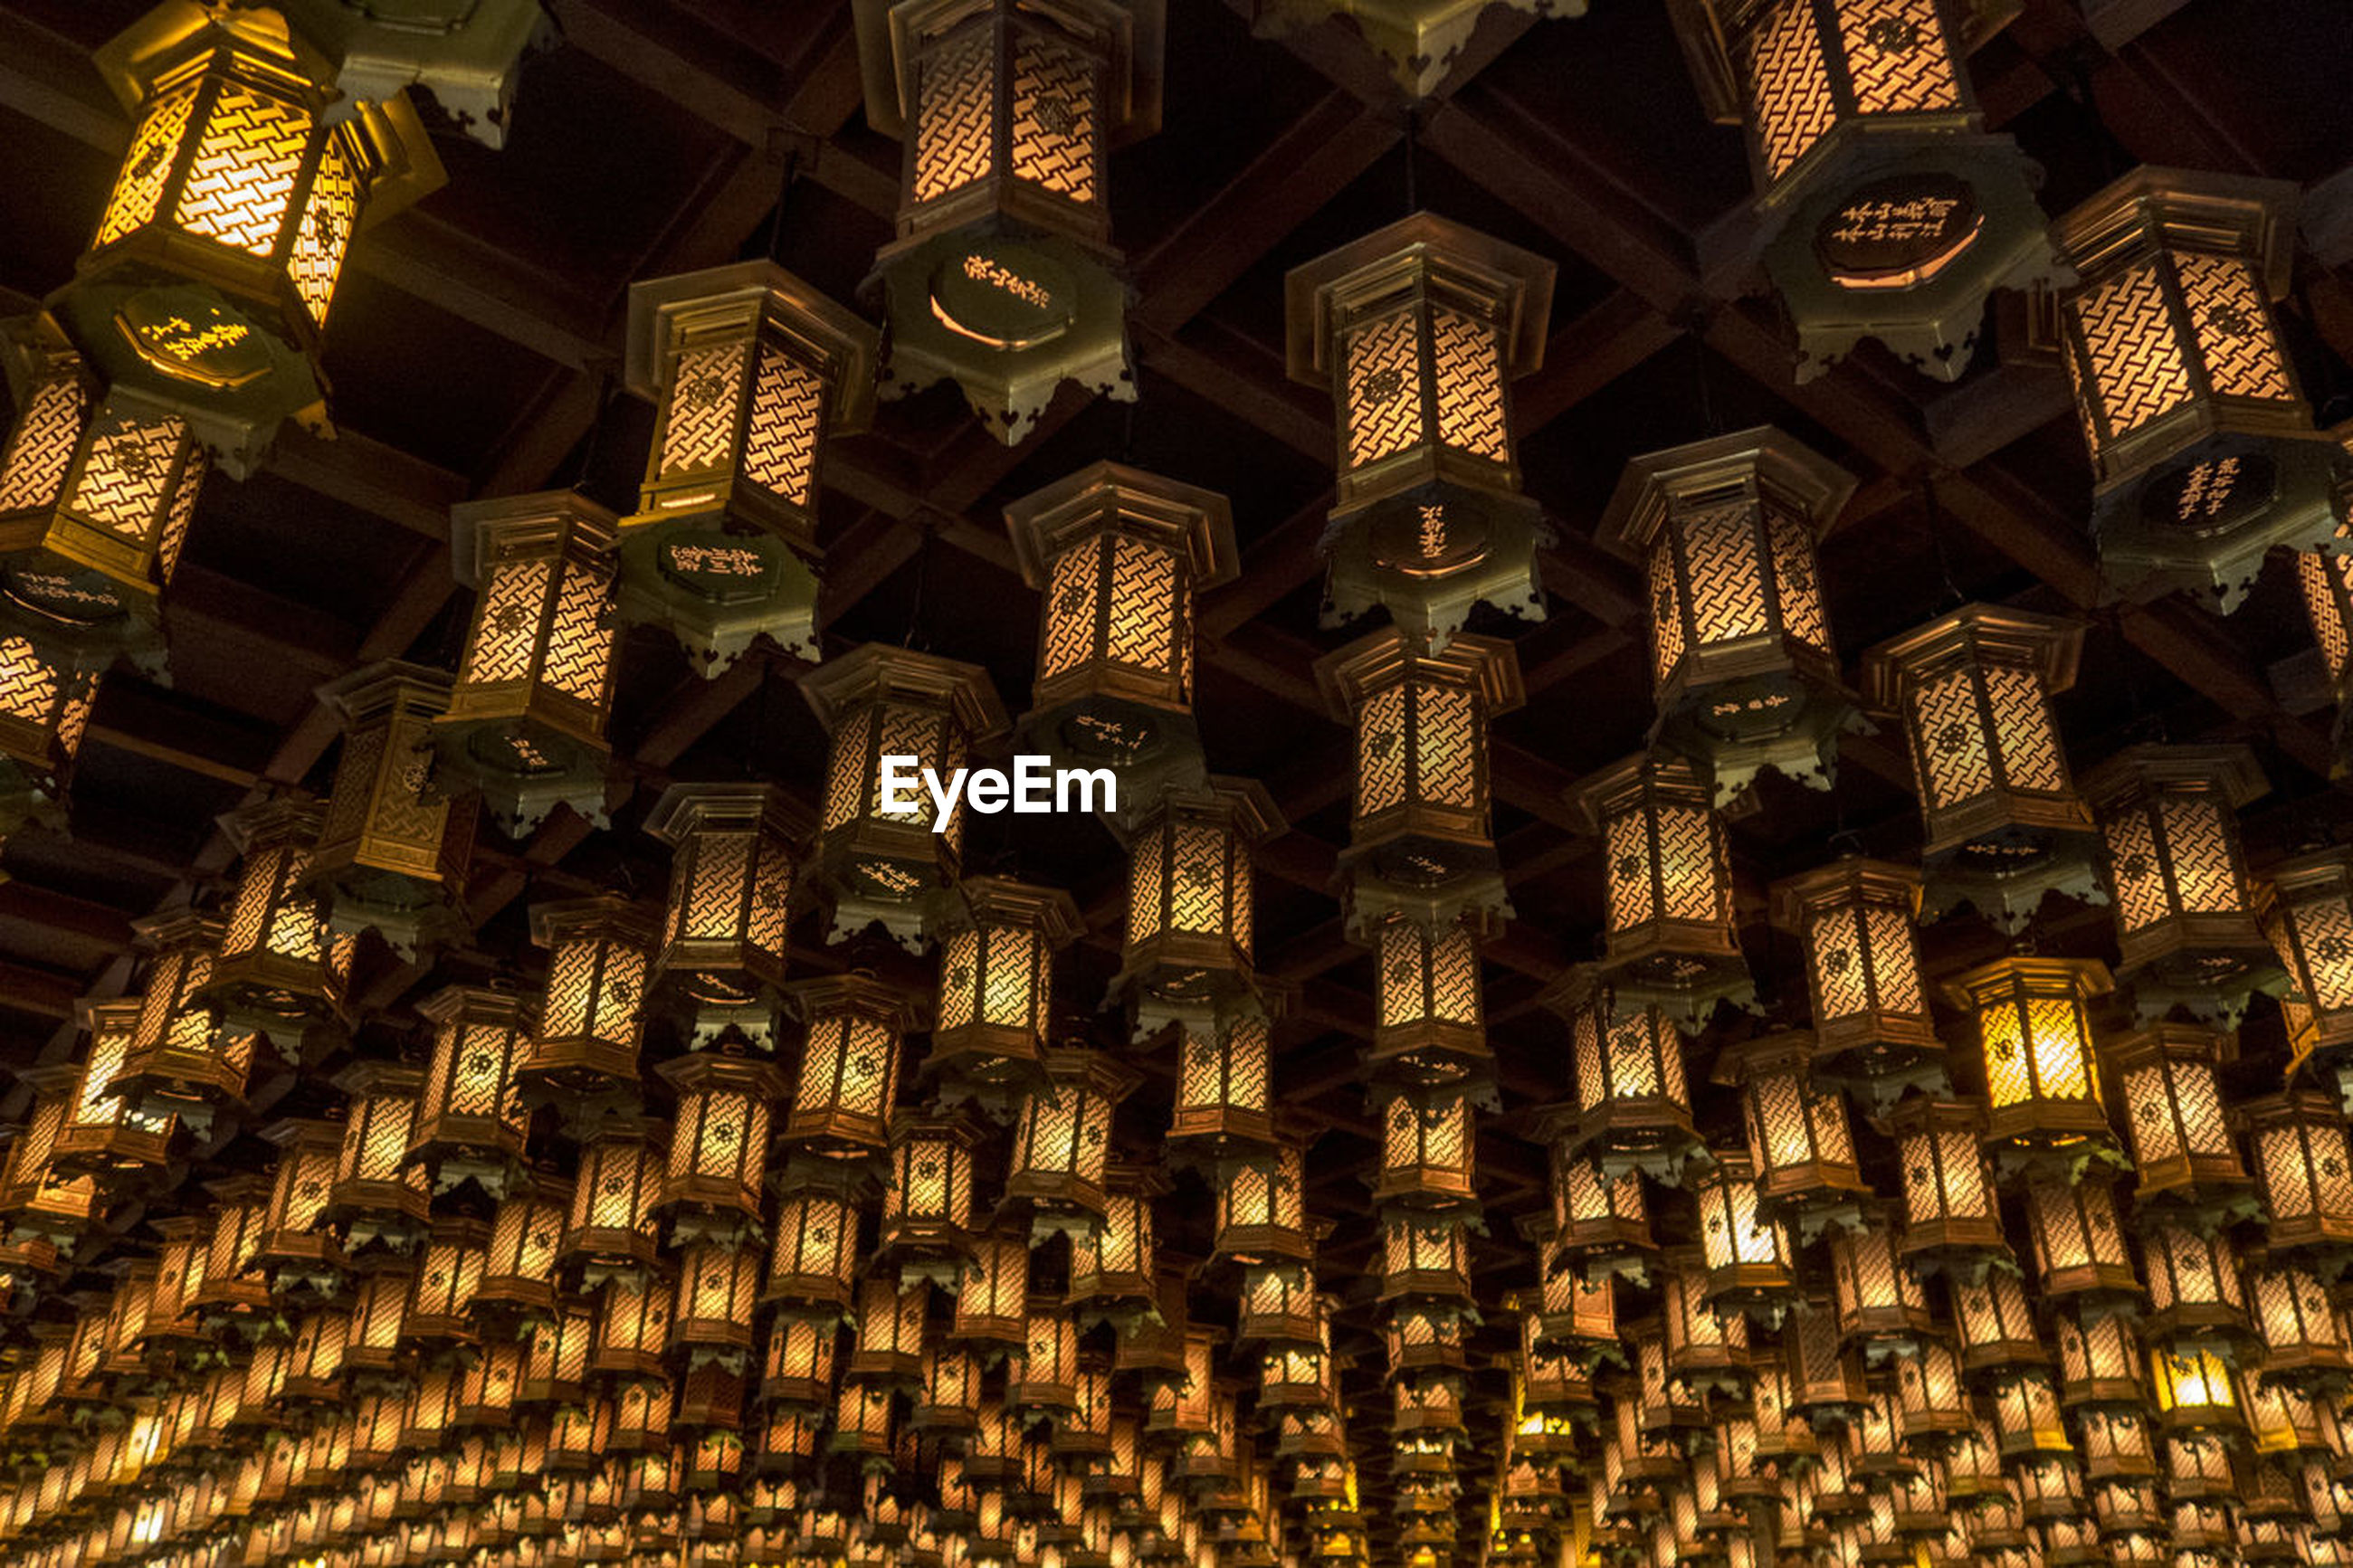 low angle view, full frame, no people, indoors, pattern, backgrounds, abundance, built structure, large group of objects, architecture, repetition, hanging, place of worship, decoration, lighting equipment, belief, design, creativity, illuminated, religion, ceiling, ornate